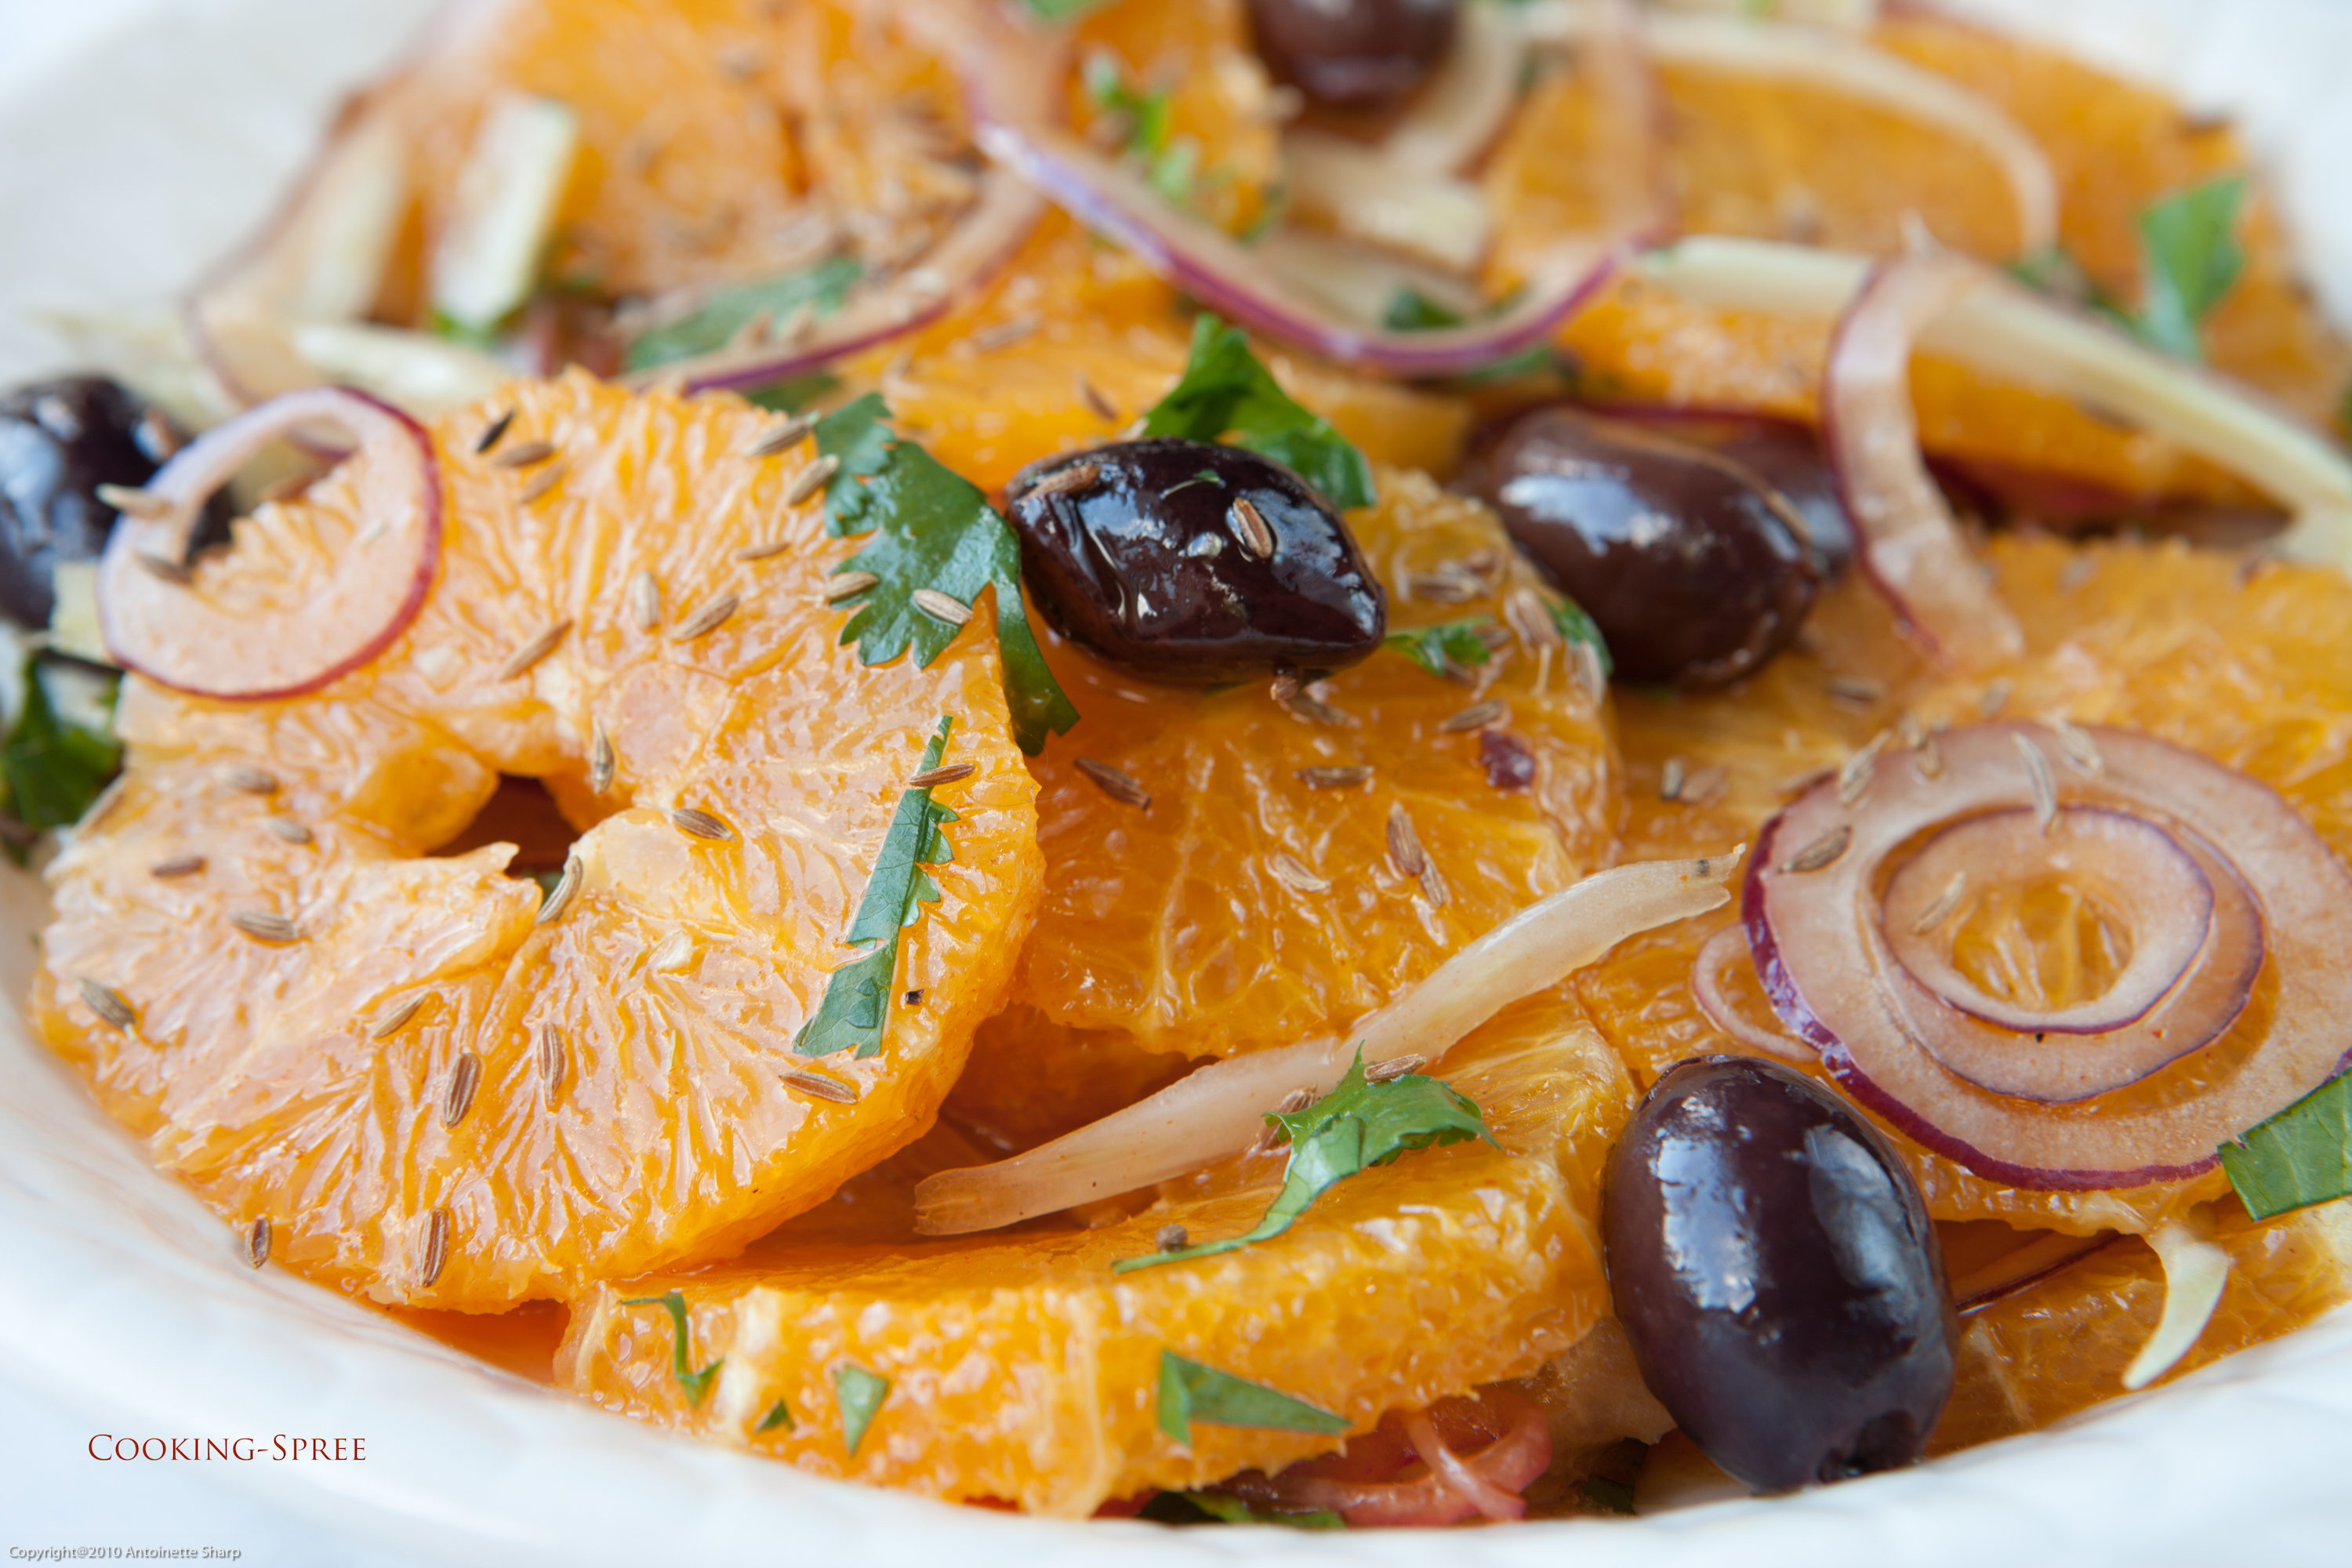 Moroccan Orange Salad with Red Onions & Black Olives